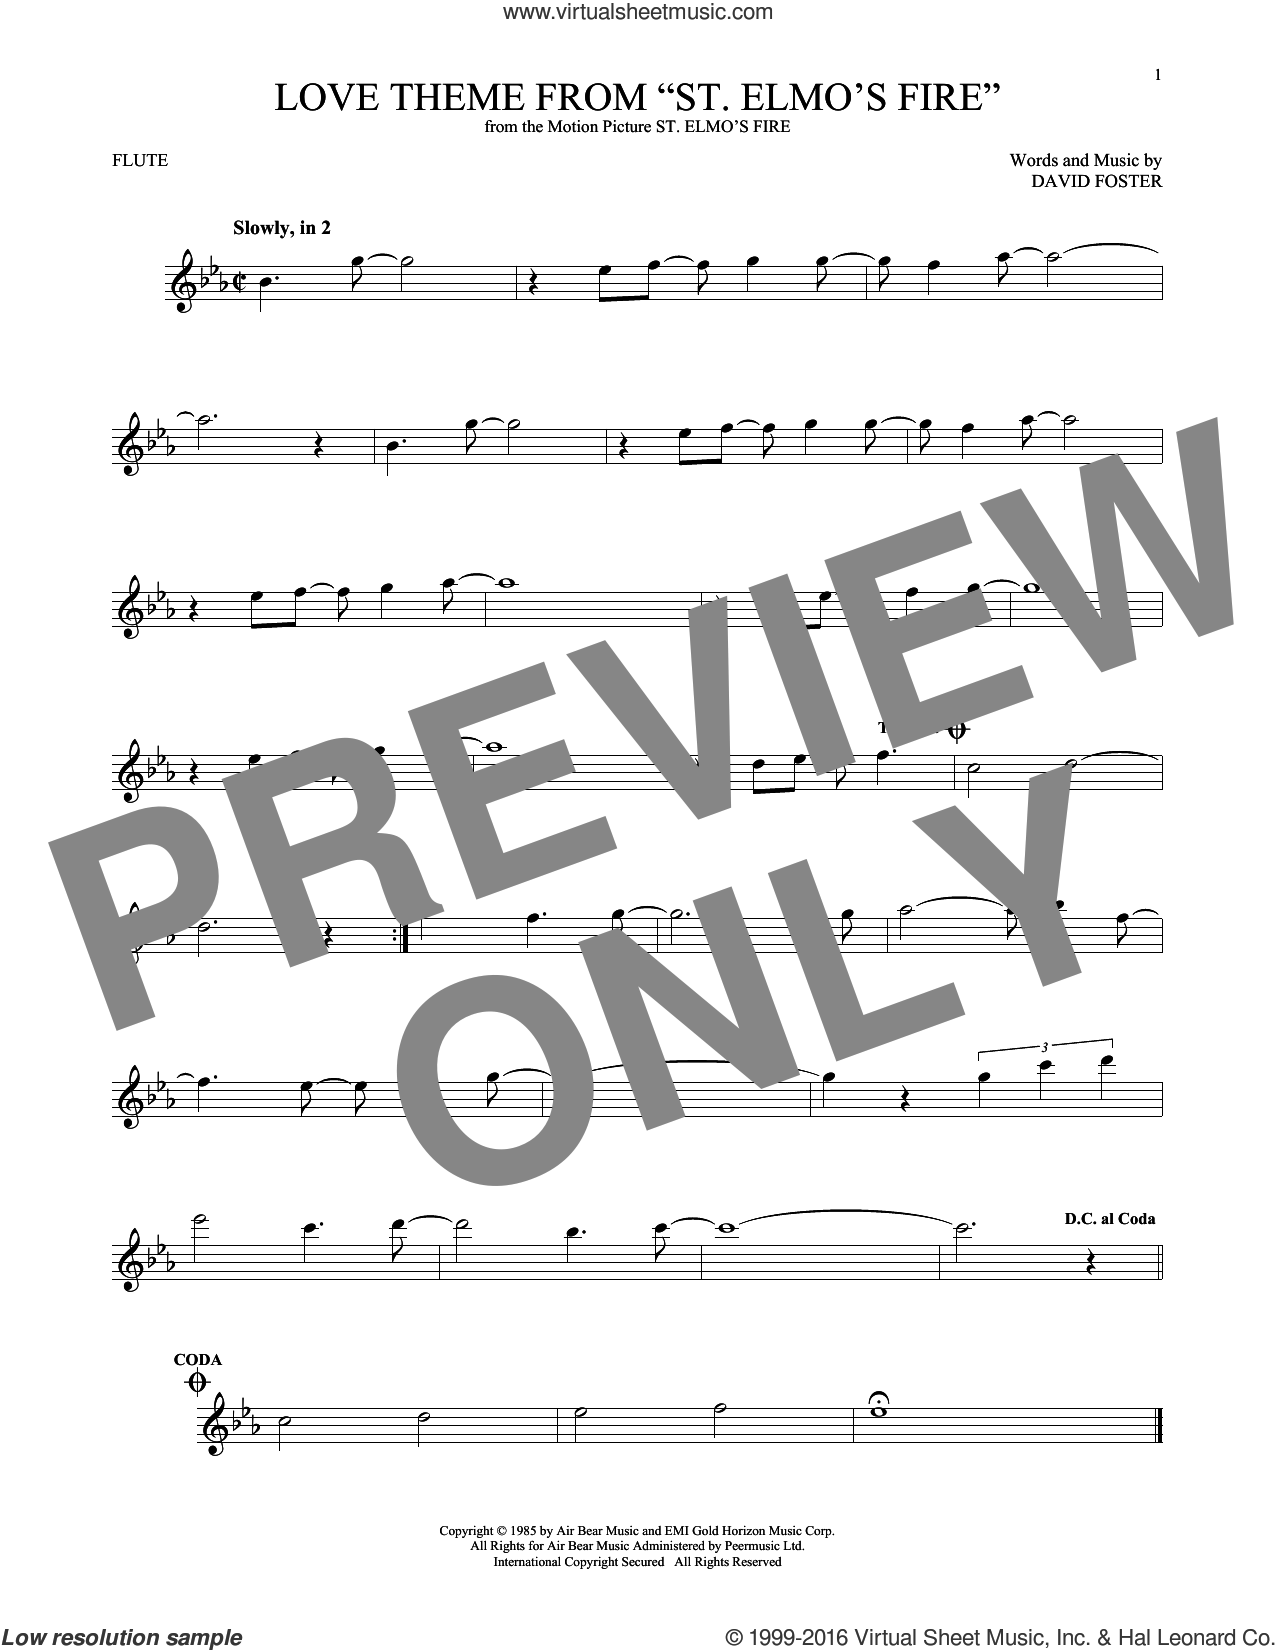 Love Theme From 'St. Elmo's Fire' sheet music for flute solo by David Foster, intermediate skill level